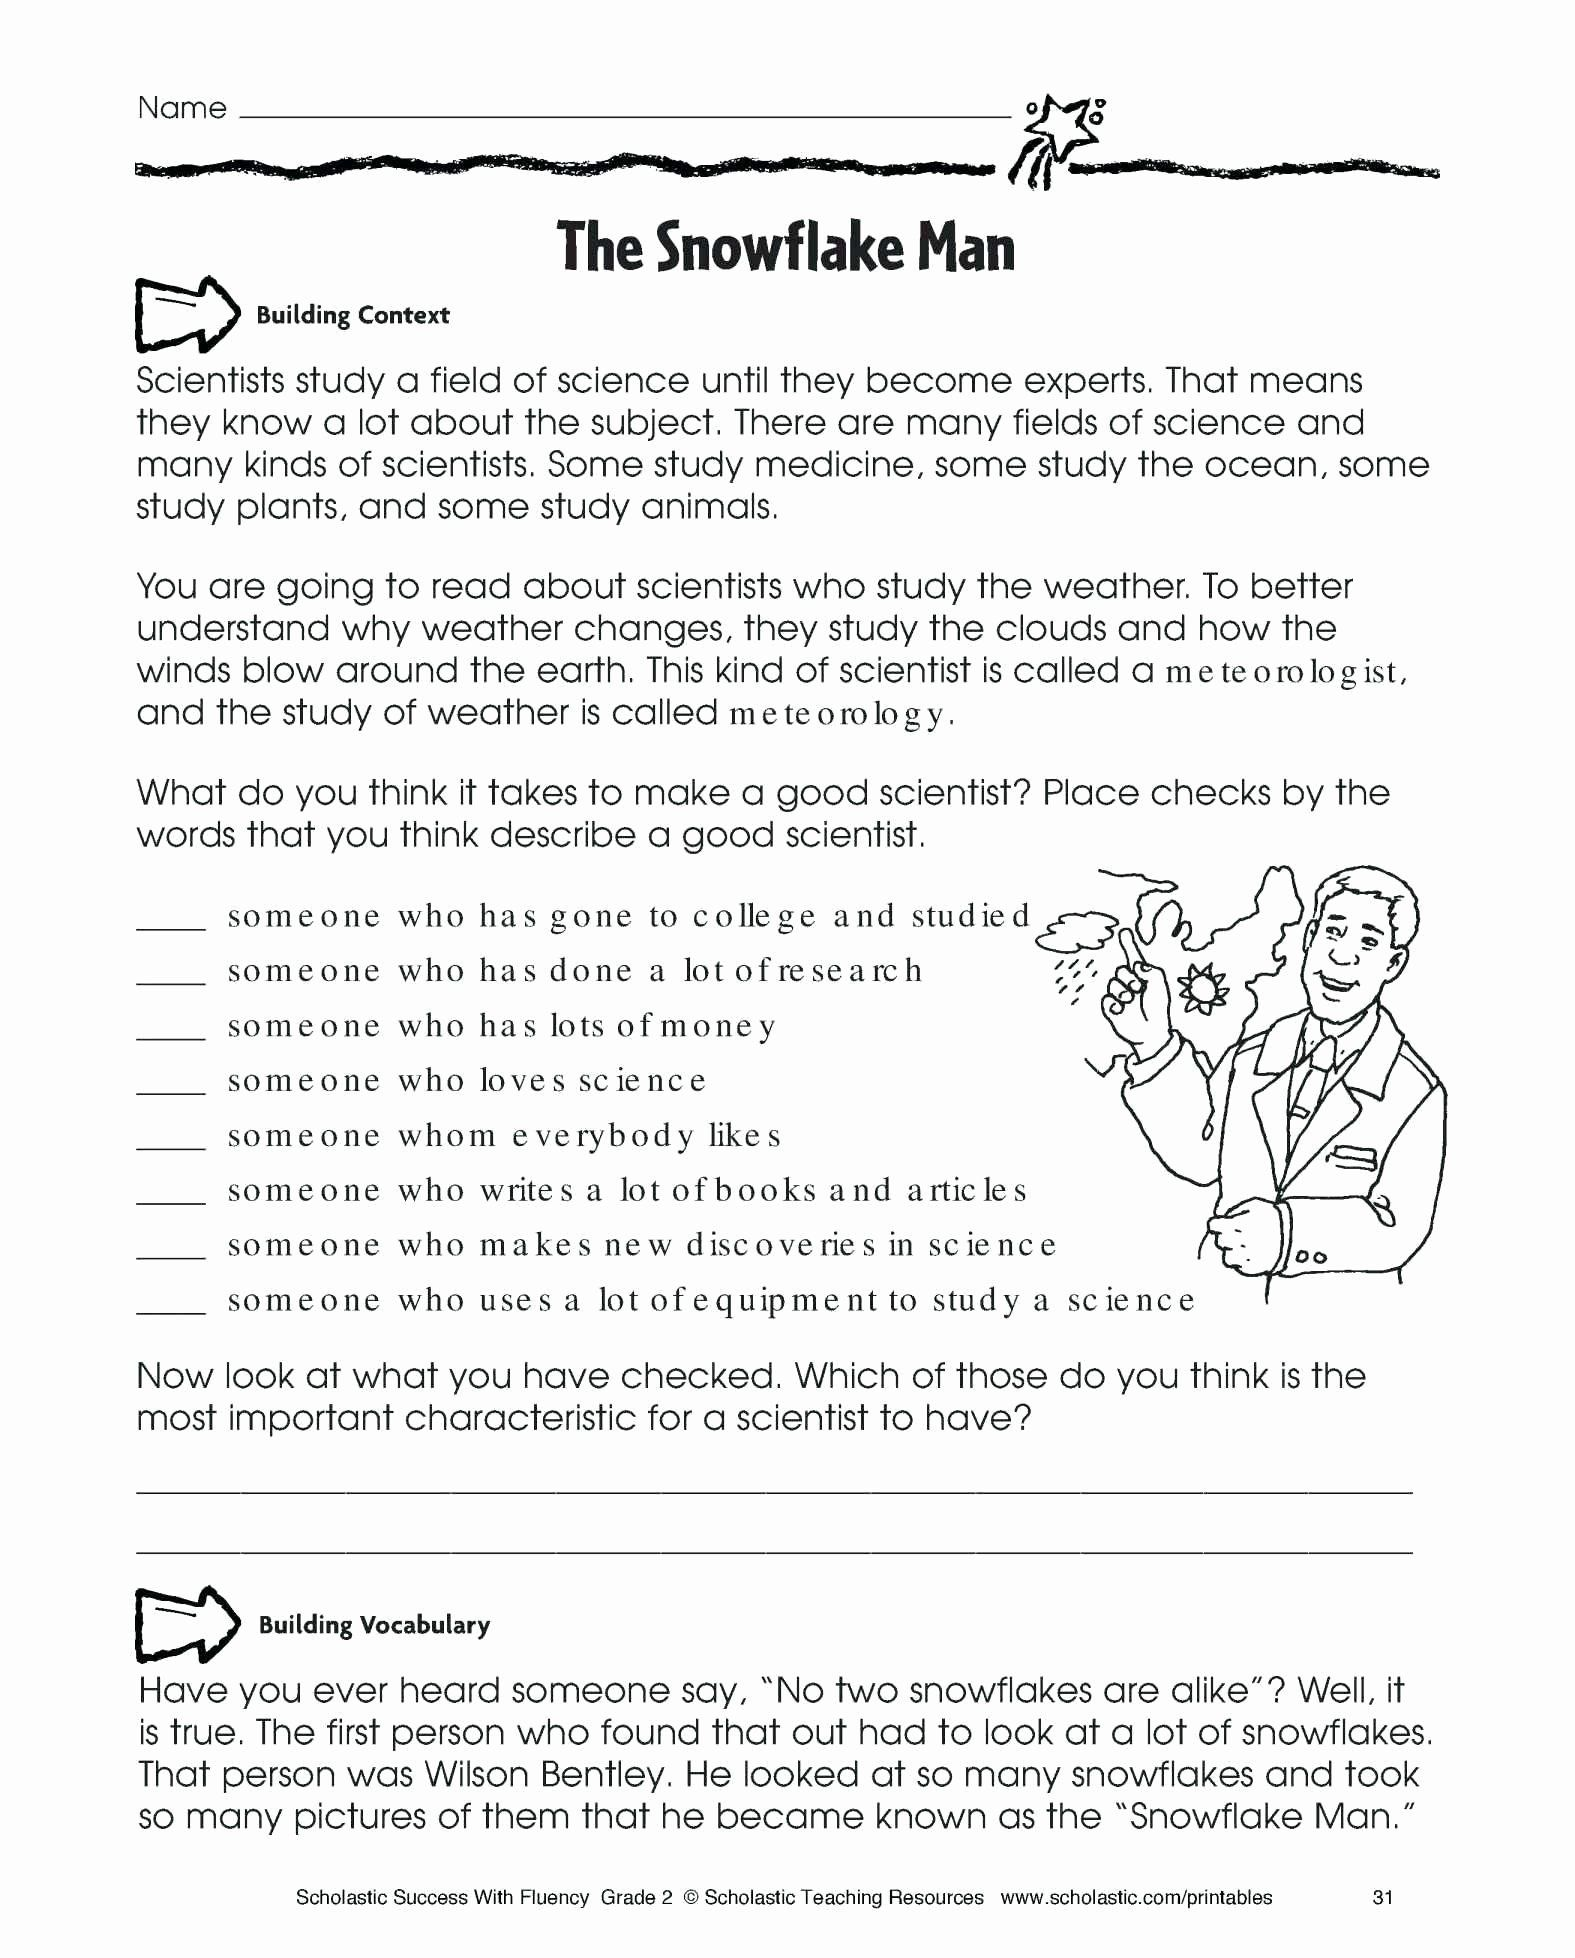 Pin By Ruth Falwell On Education Comprehension Worksheets Reading Comprehension Worksheets Reading Comprehension